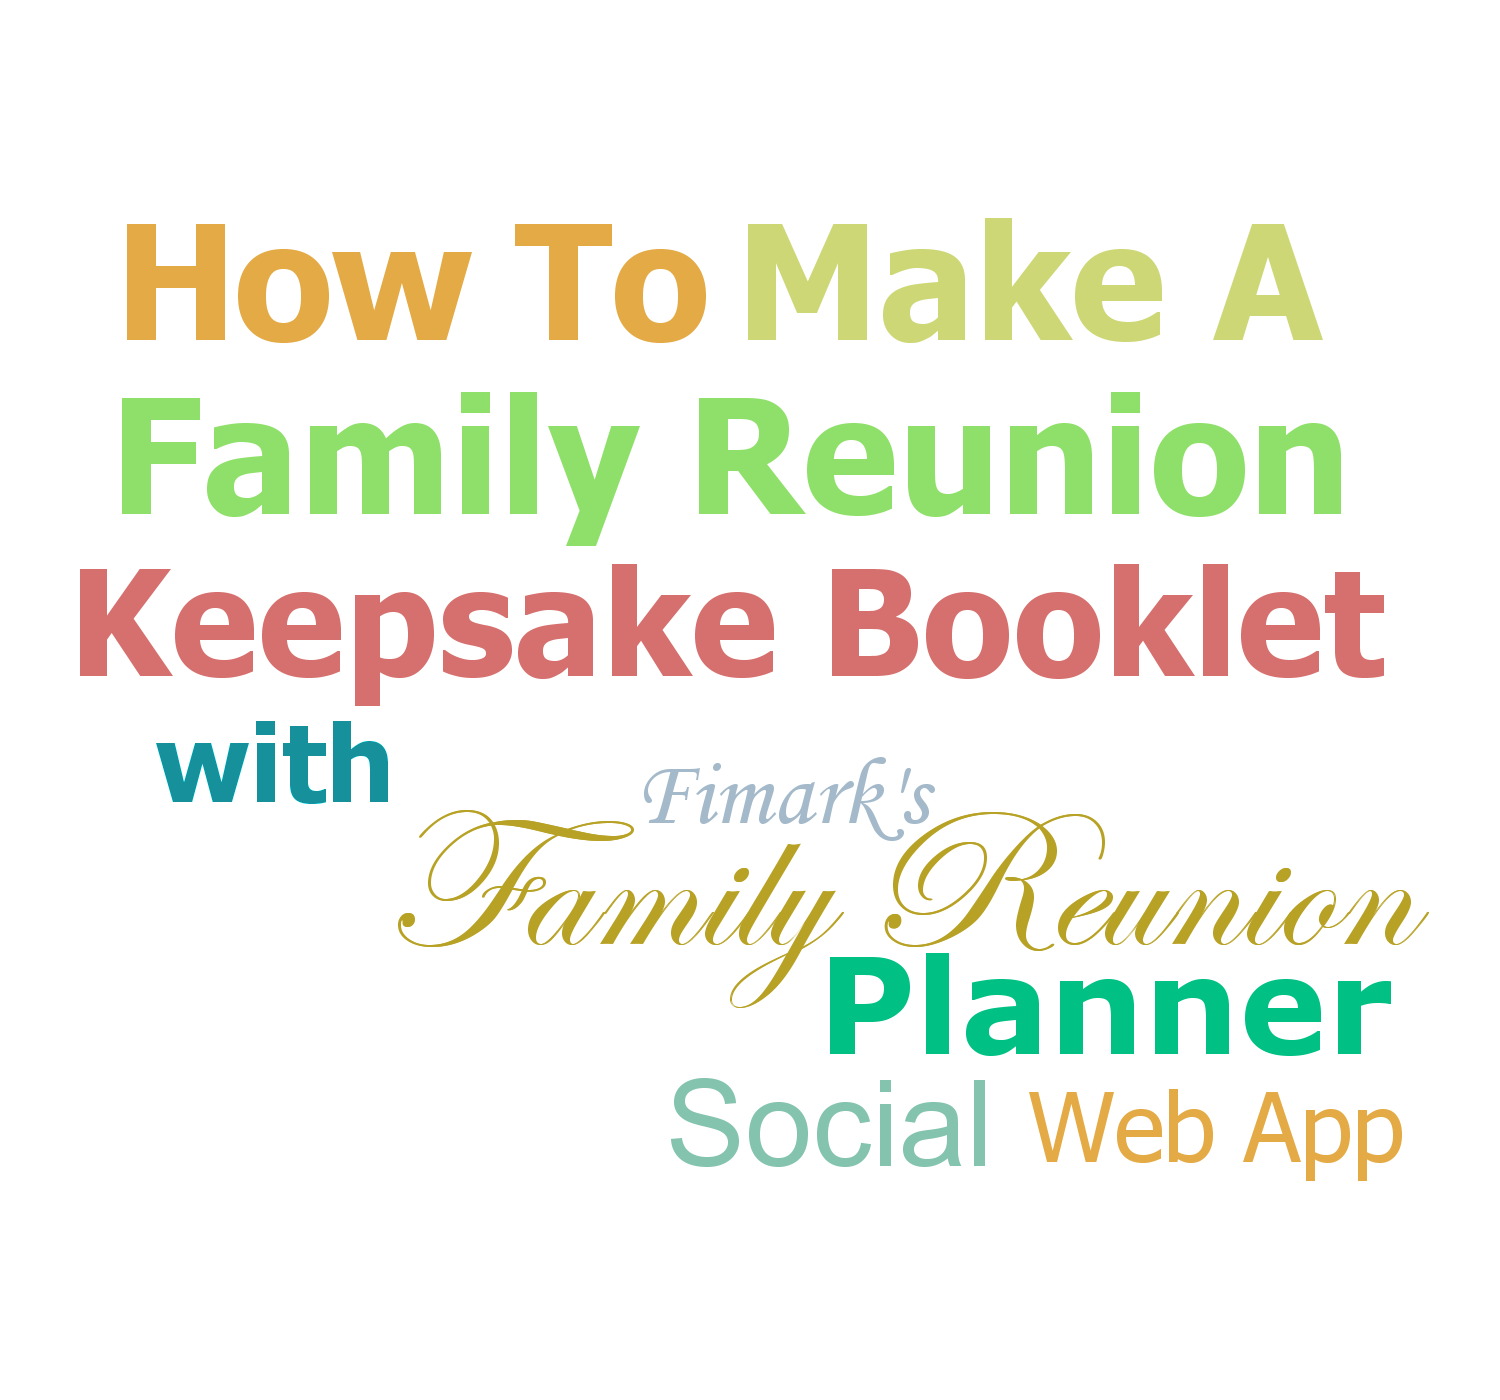 Family Reunion Planning Guides Apps And Books How To Make A Keepsake Reunion Booklet